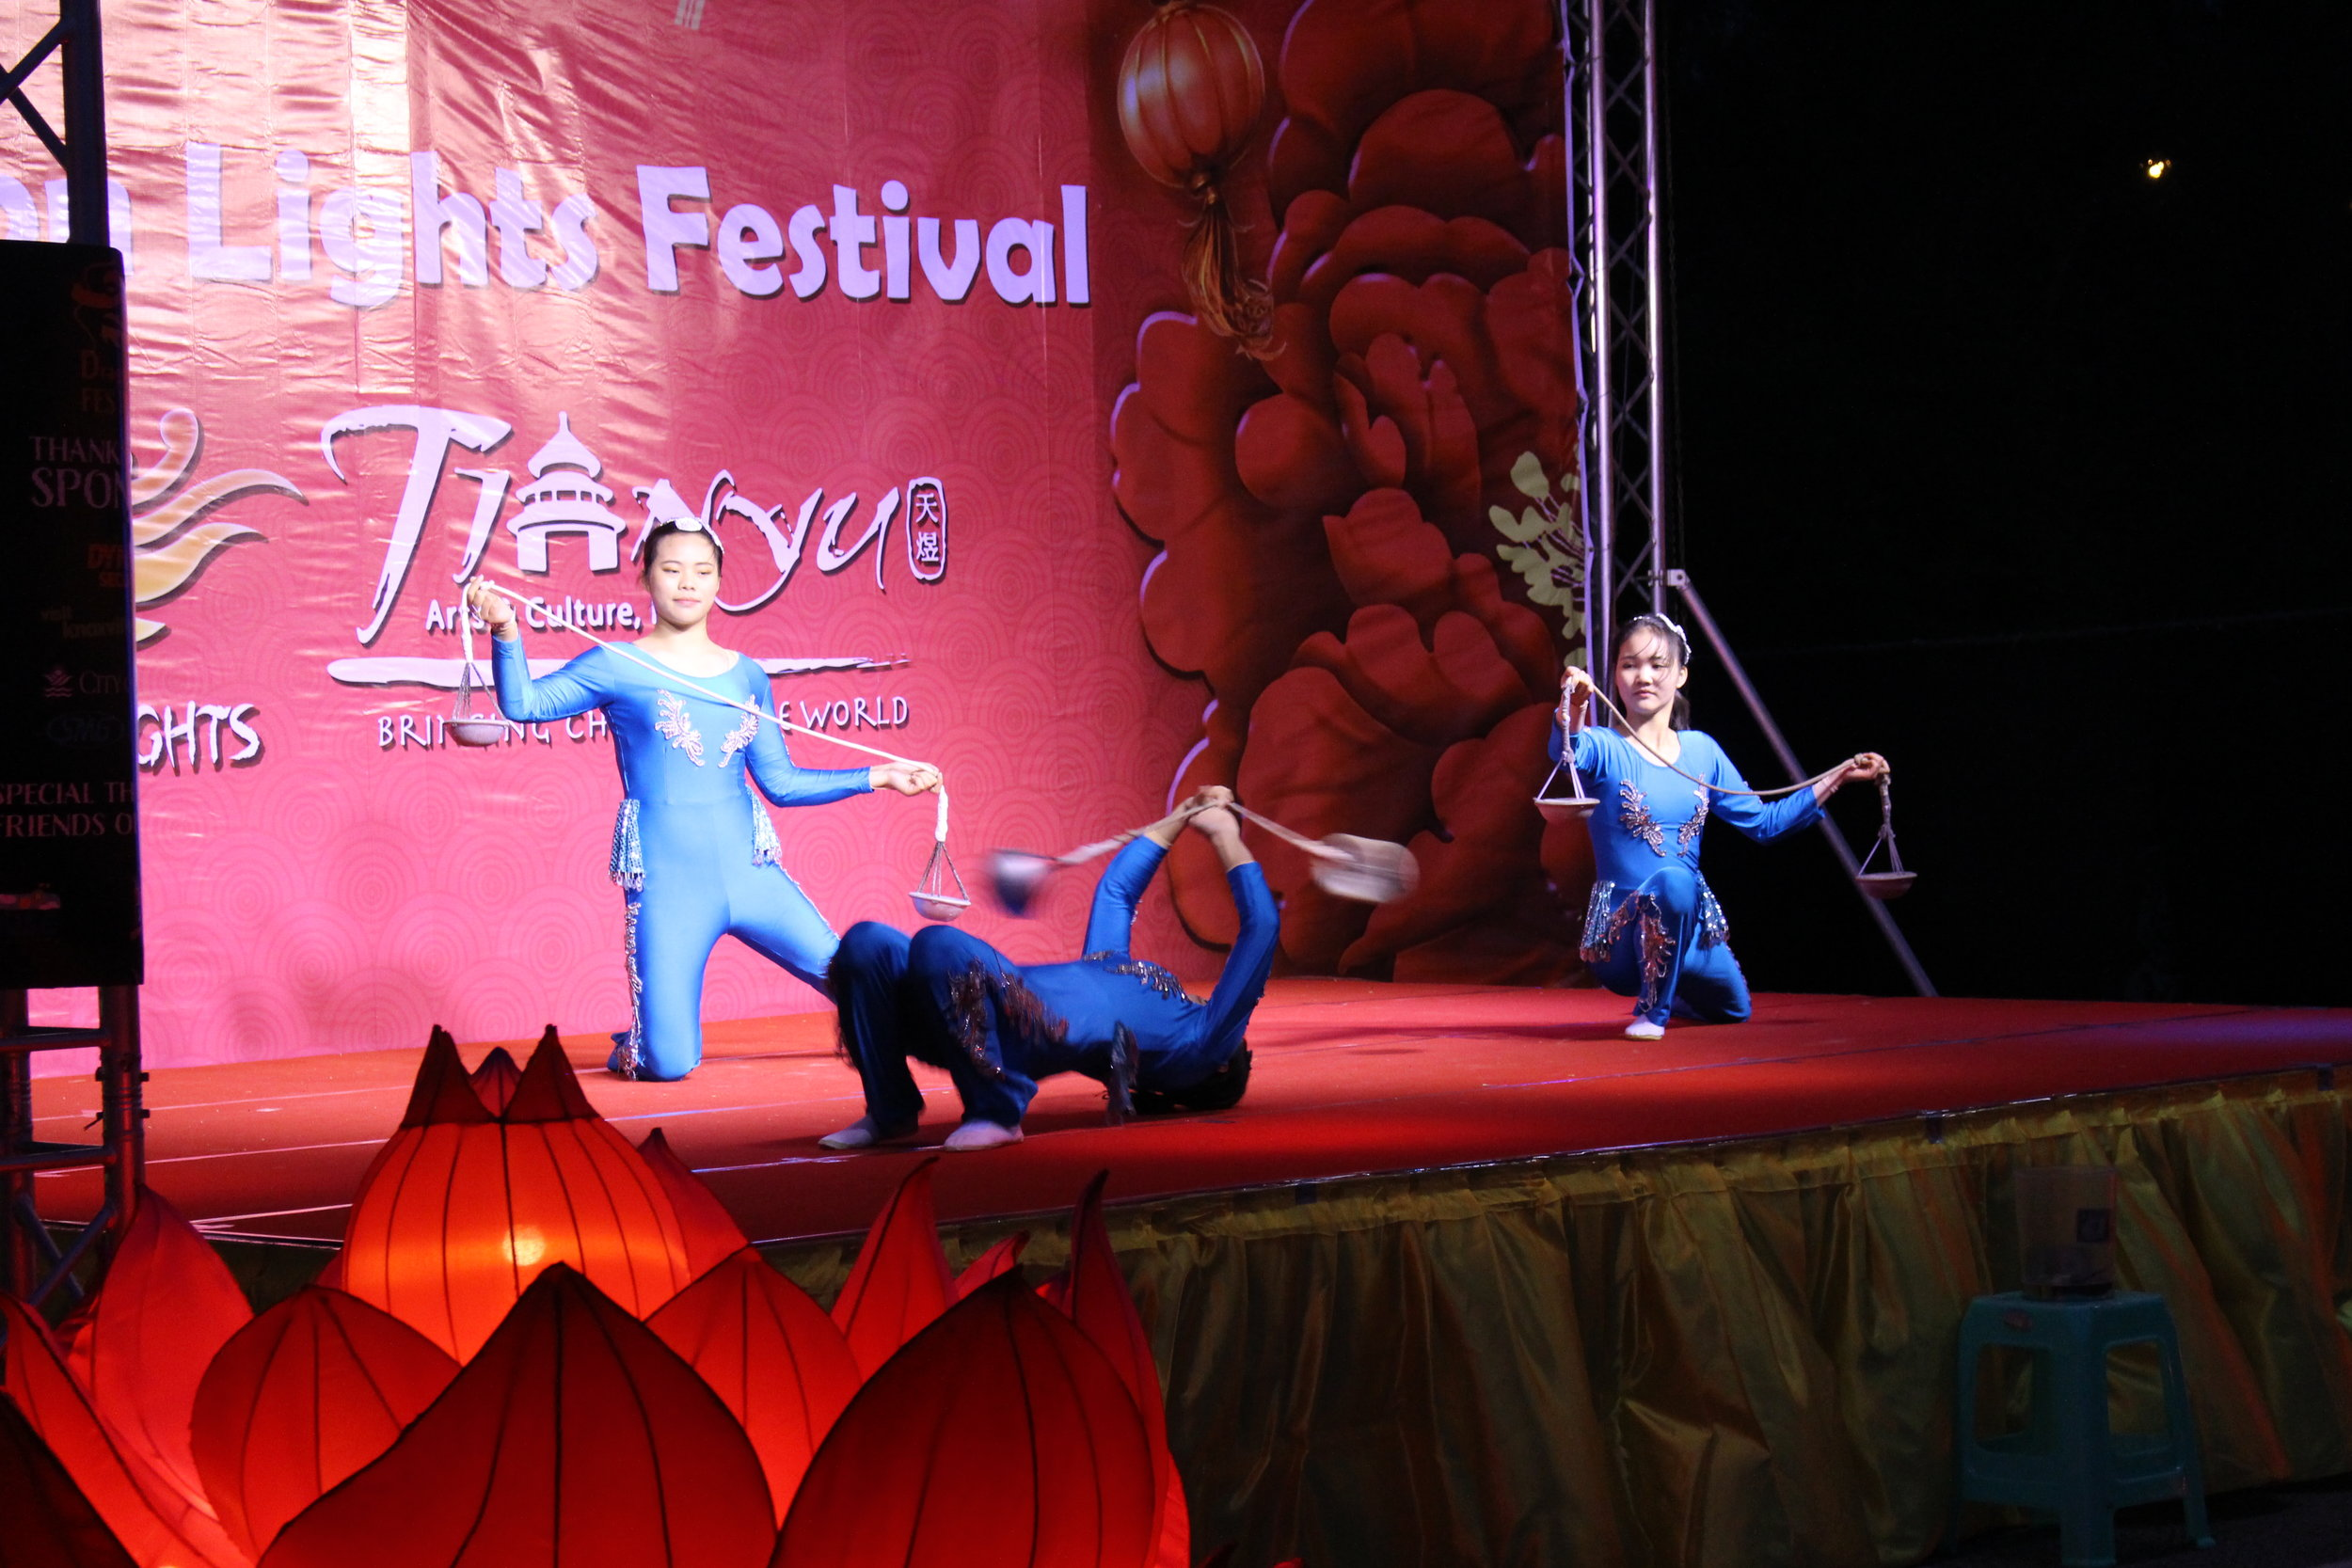 The festival also features performances multiple times throughout the night.